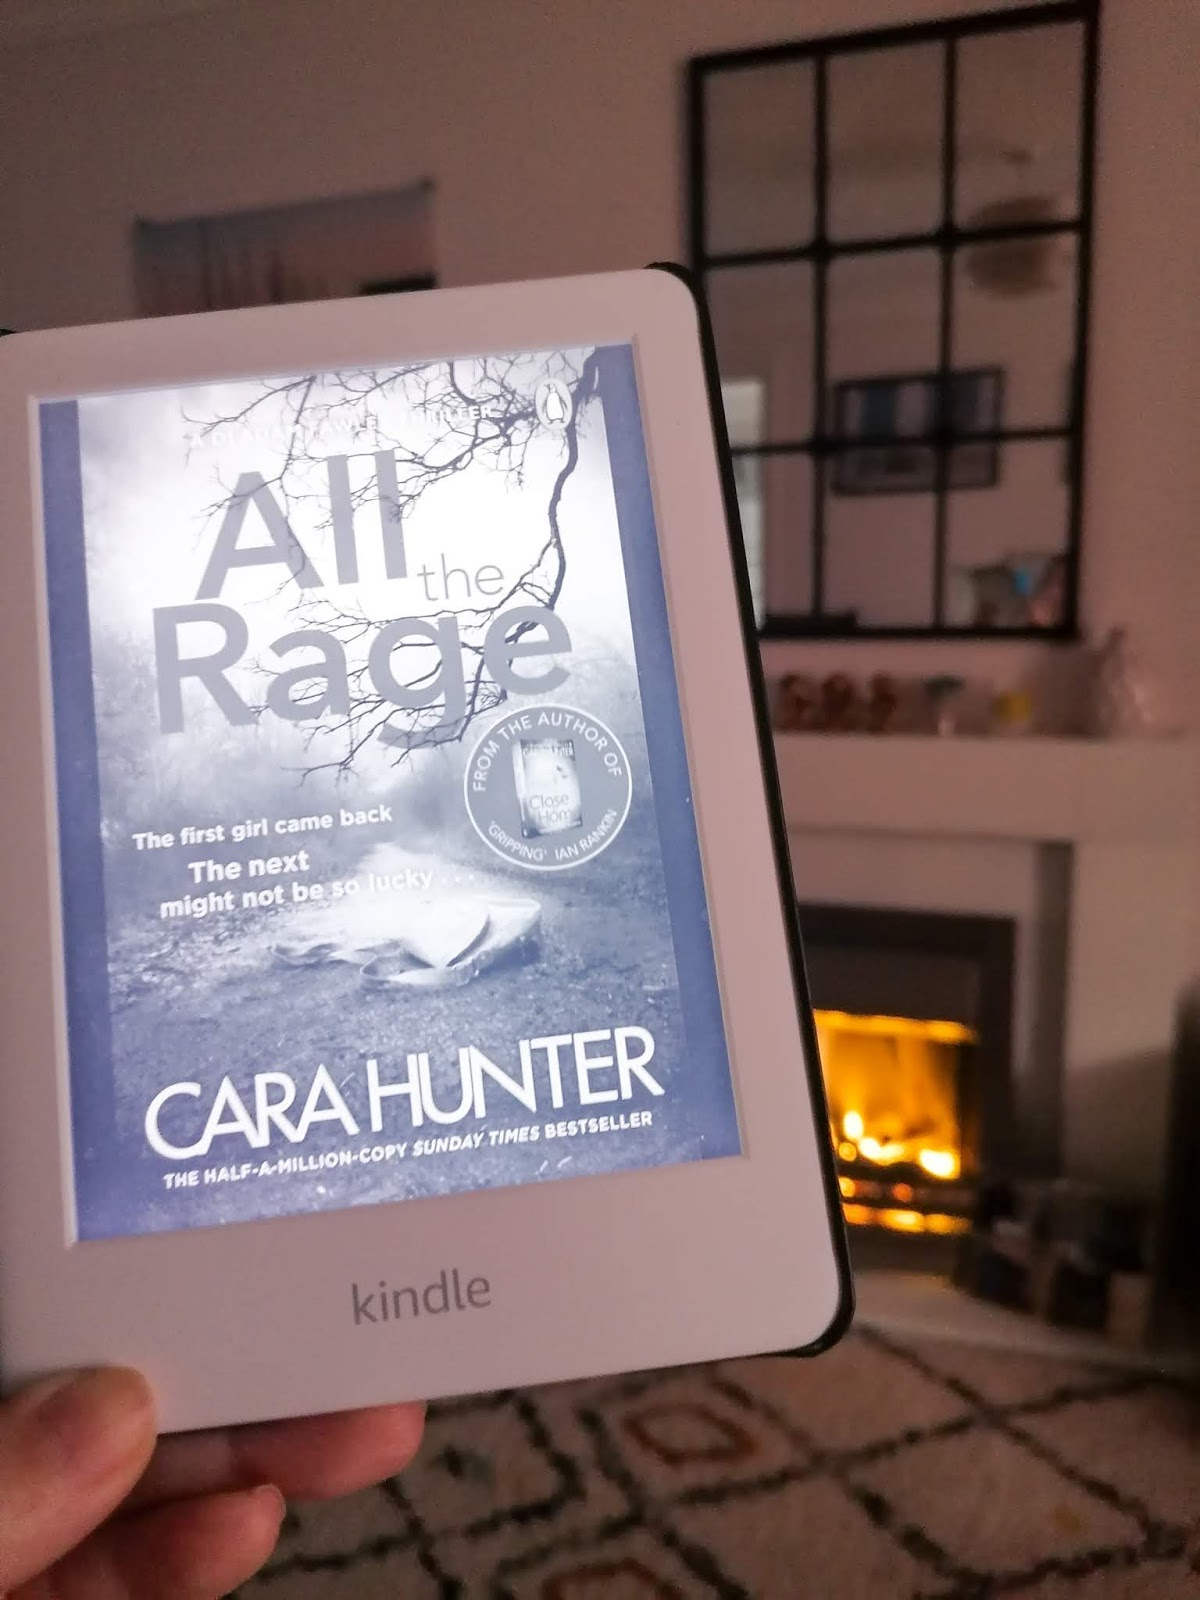 All the rage - Cara Hunter review